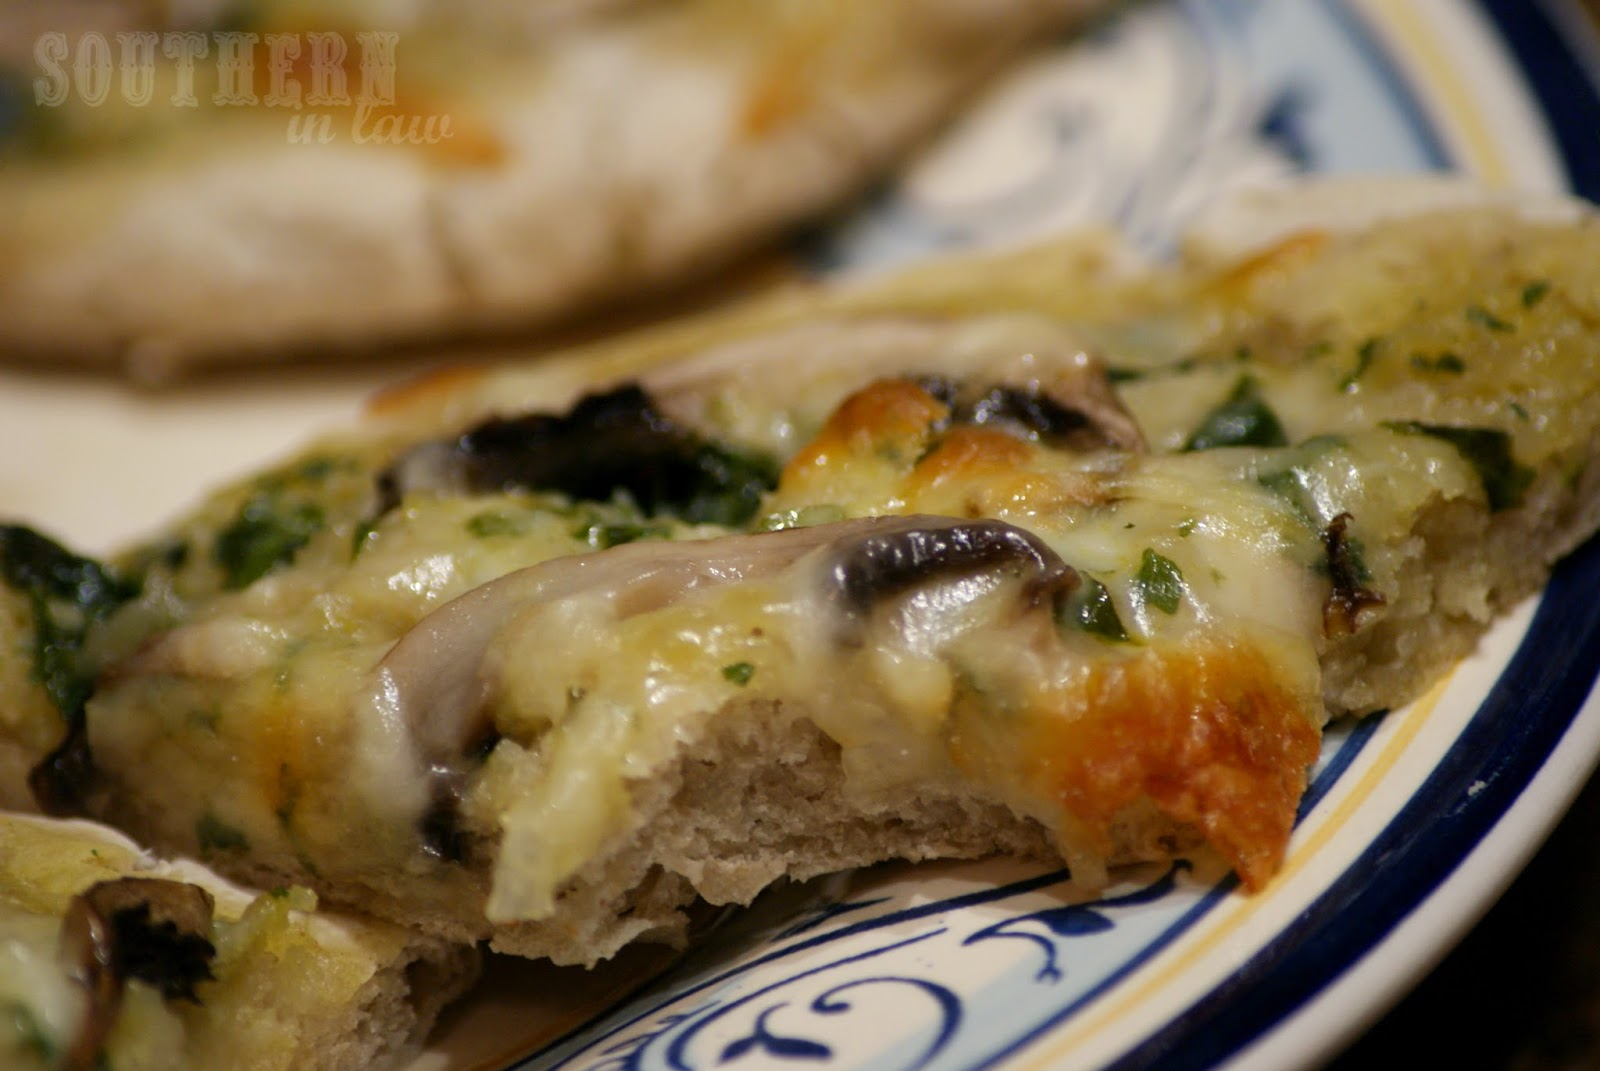 Garlic Herb and Mushroom Pizza